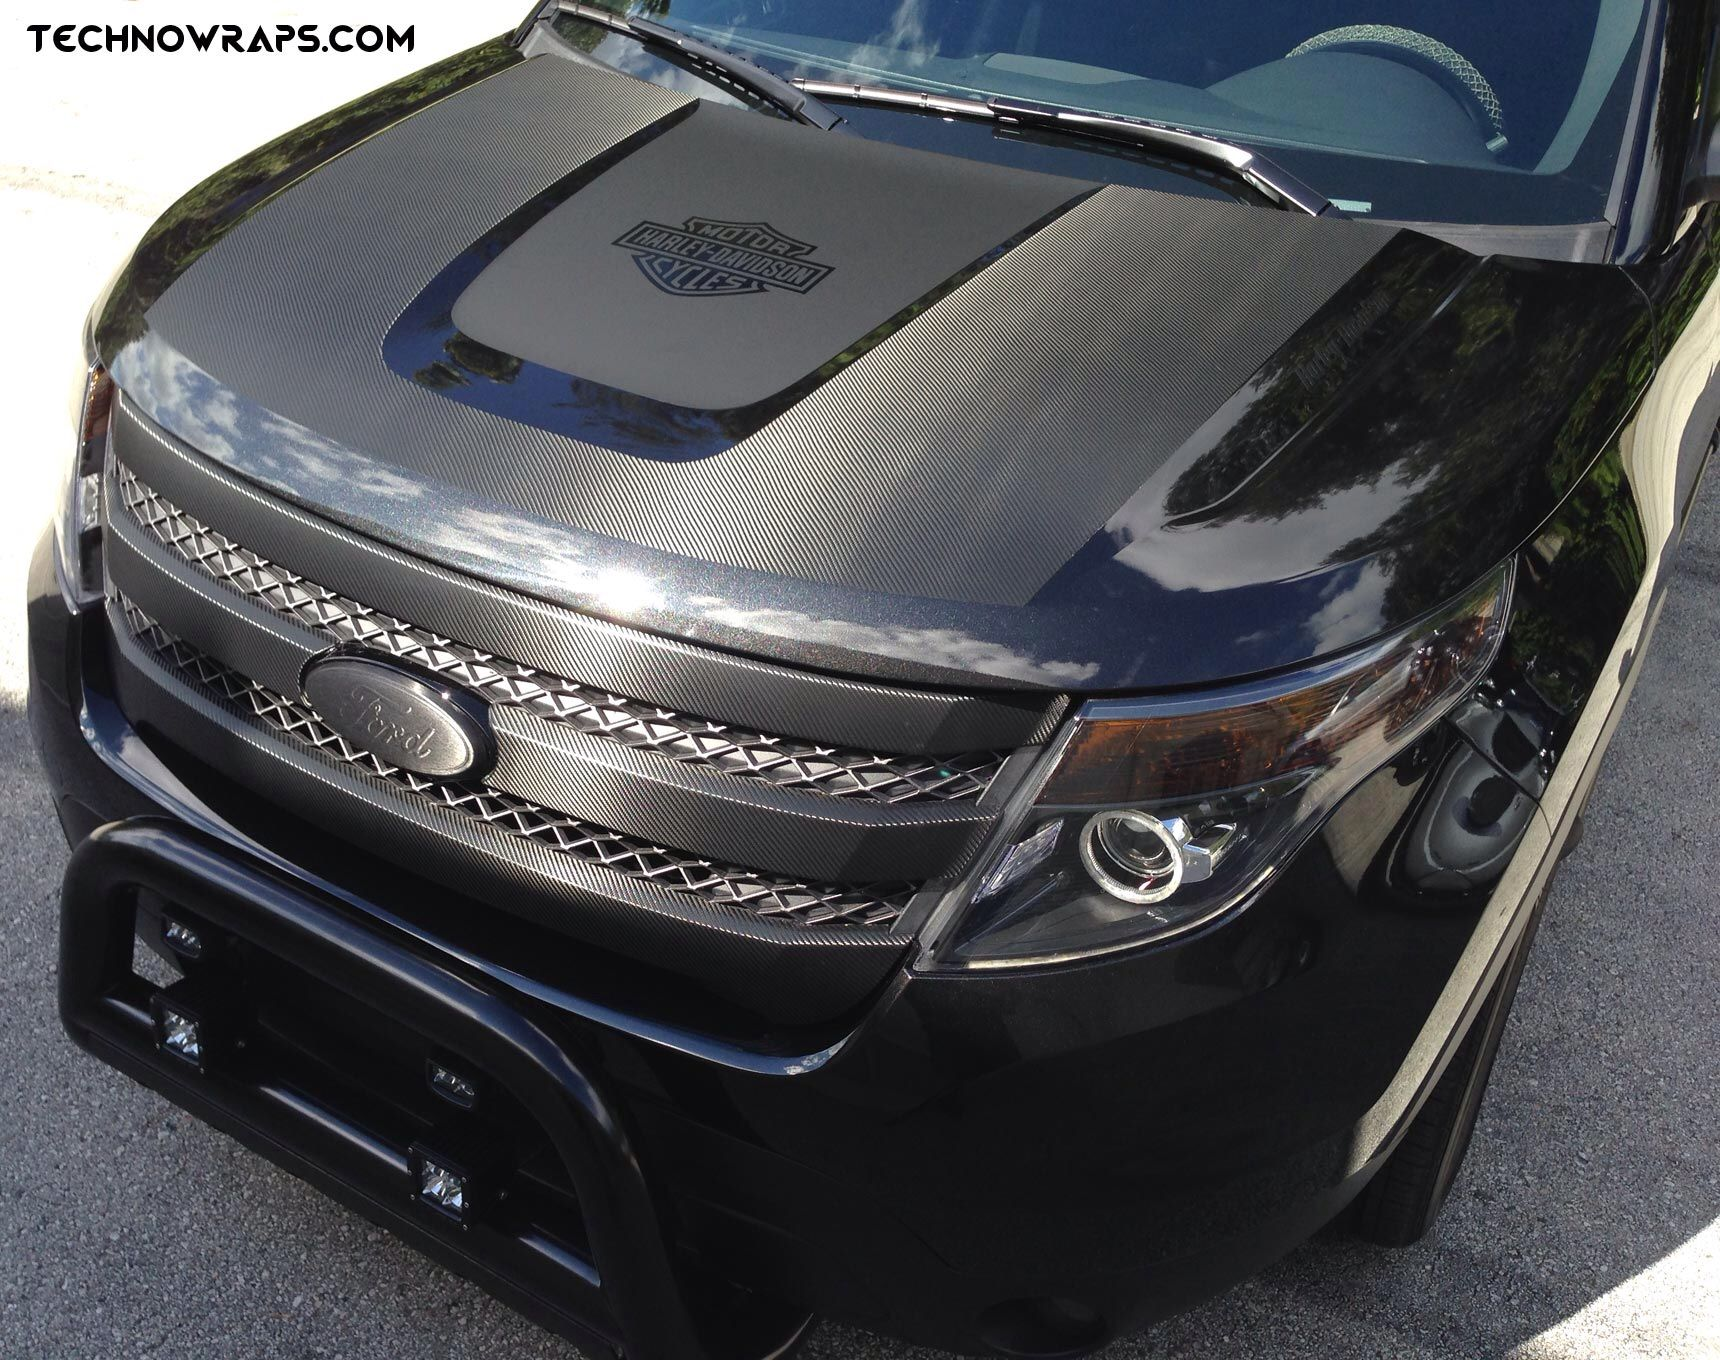 3m Series 1080 Black Carbon Fiber And Matte Hood Wrap On Ford